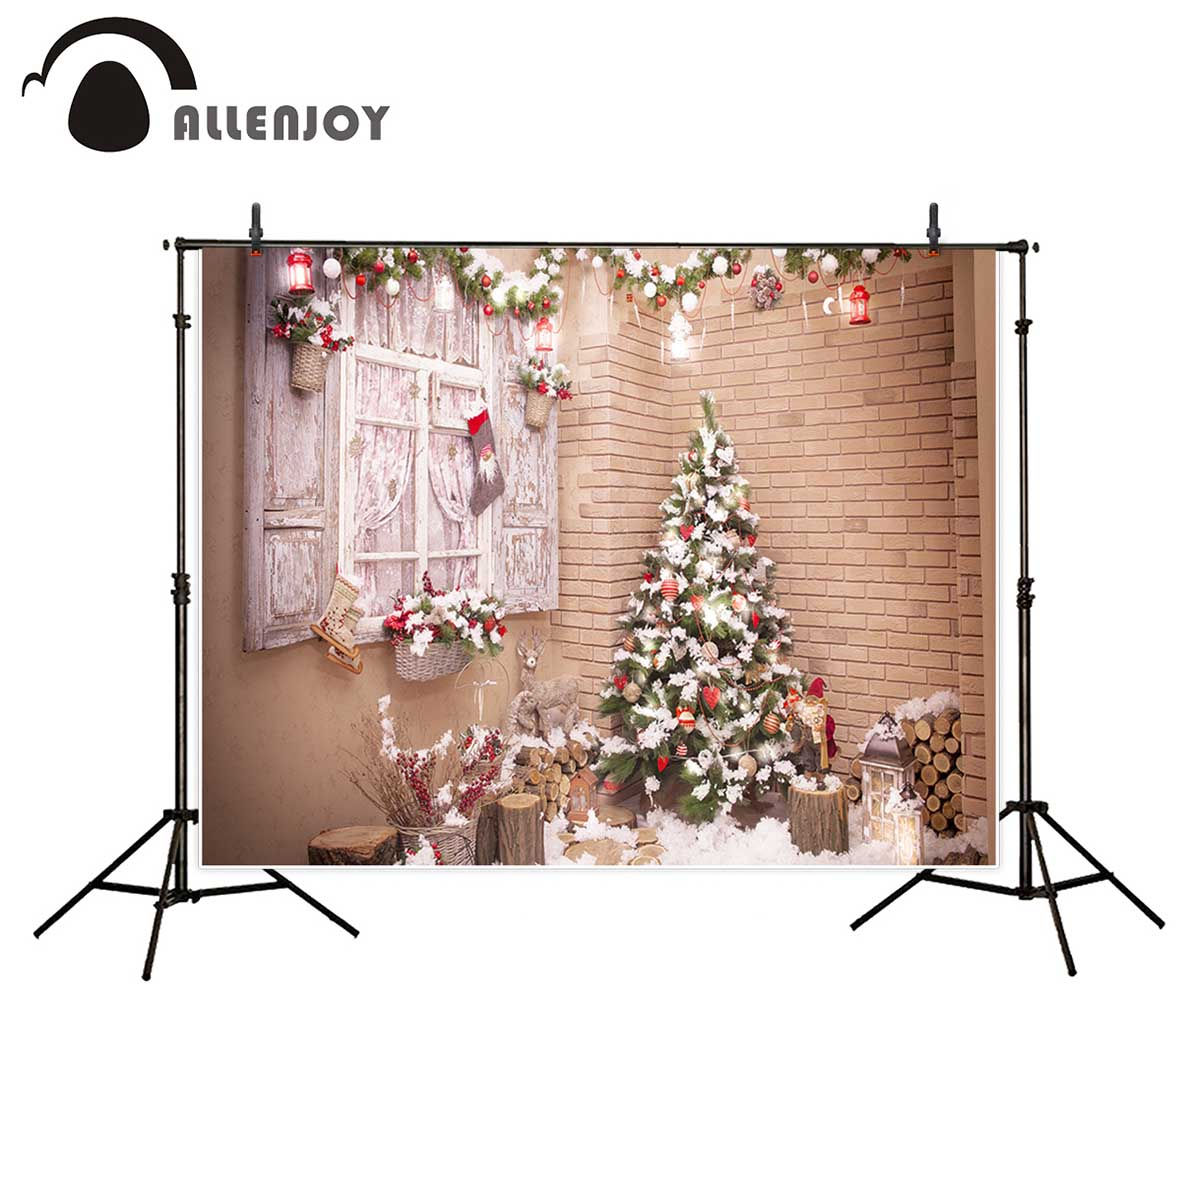 Allenjoy photographic background Winter snow window life lantern Christmas new backdrop photocall photo printed customize